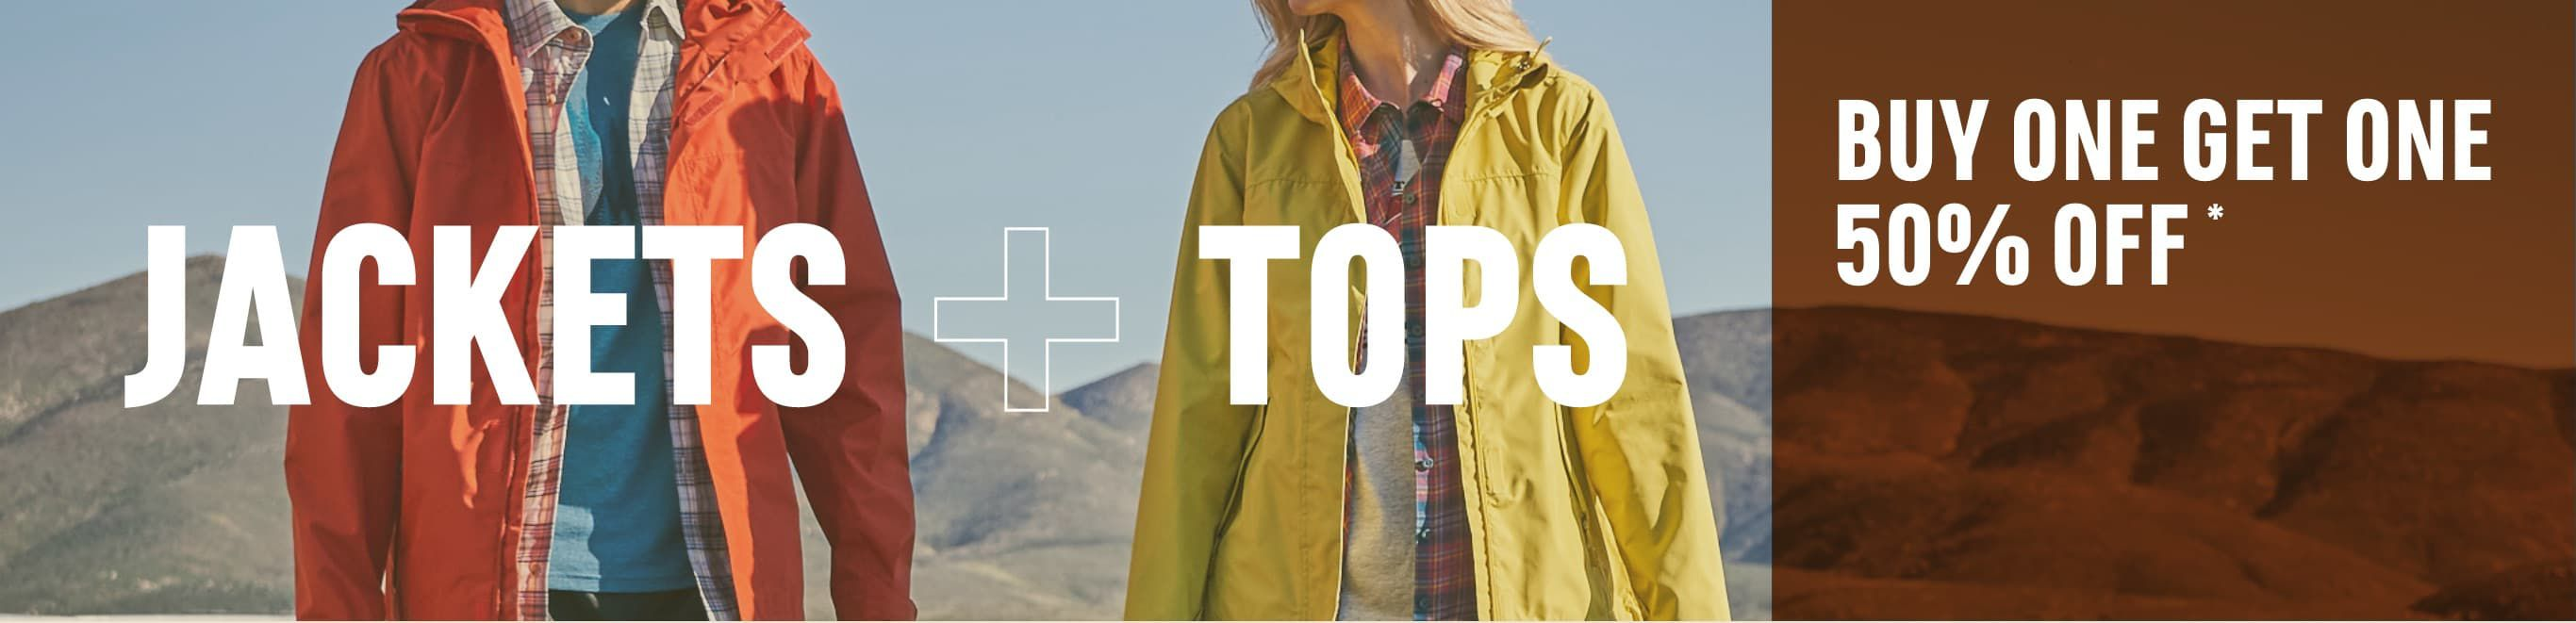 We have you covered. Jackets and Tops - Buy One Get One 50% Off*